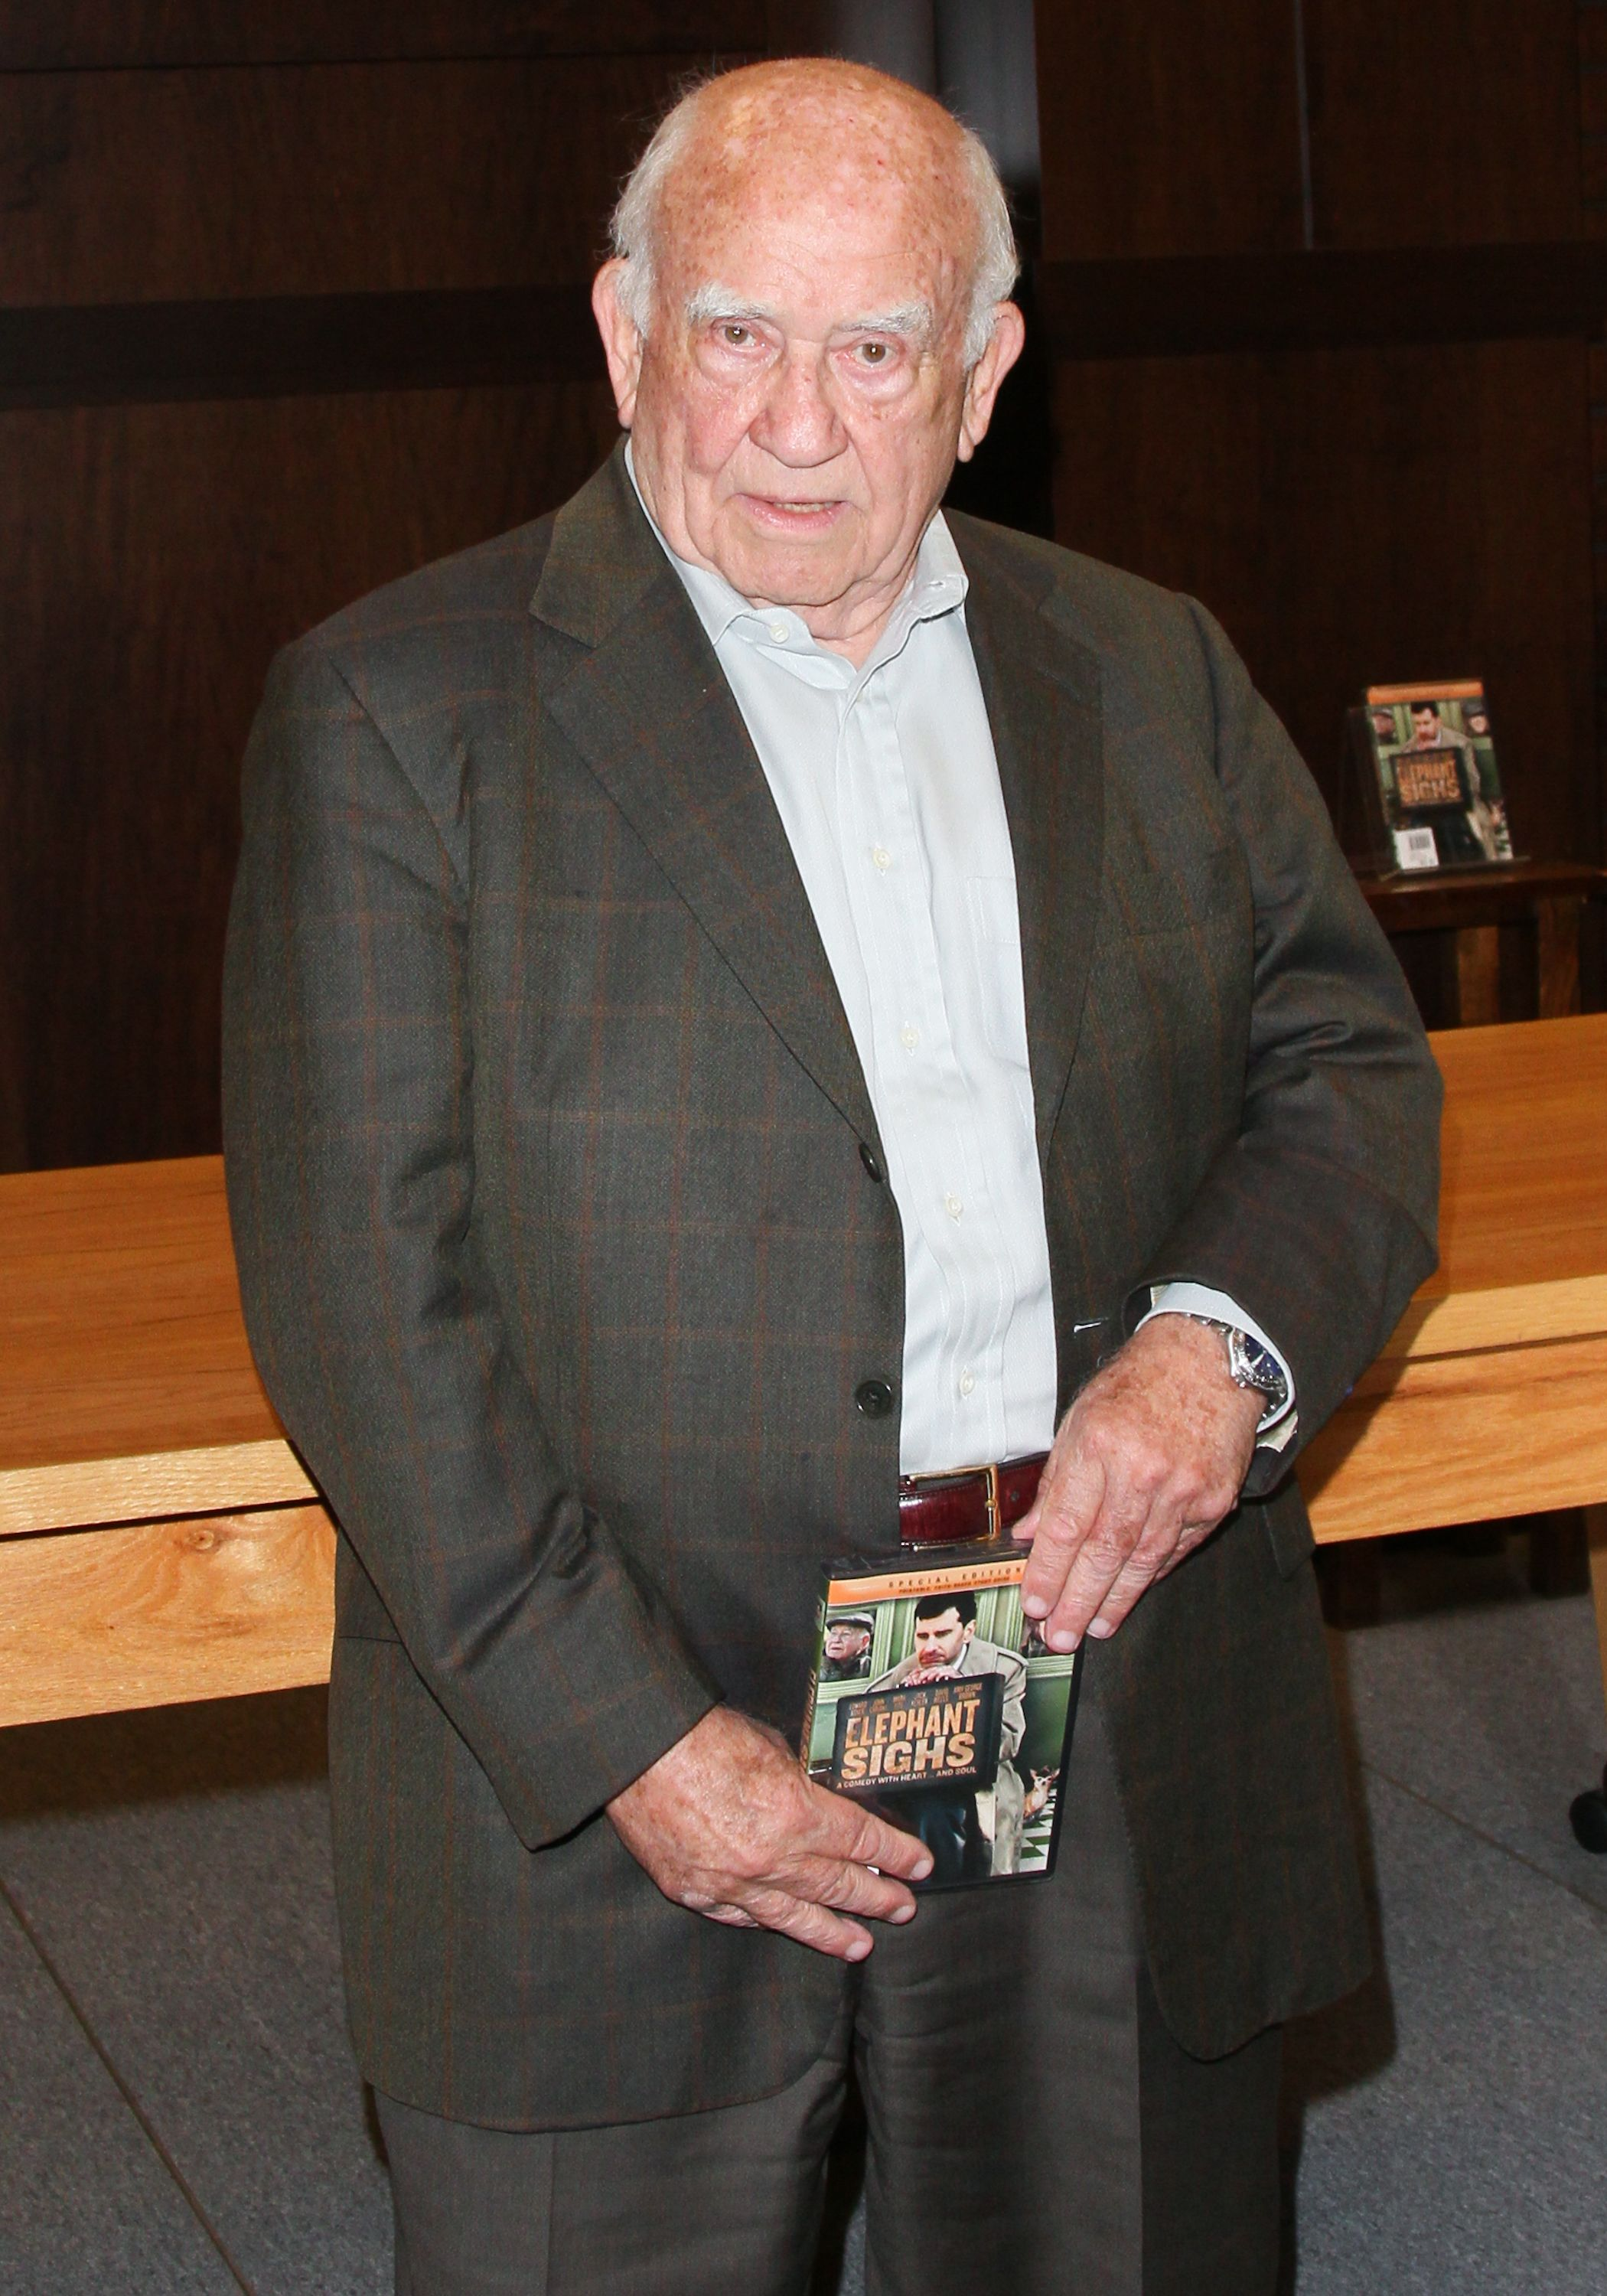 """Ed Asner at the DVD signing for """"Elephant Sighs"""" at Barnes & Noble bookstore on June 12, 2012, in Los Angeles, California 